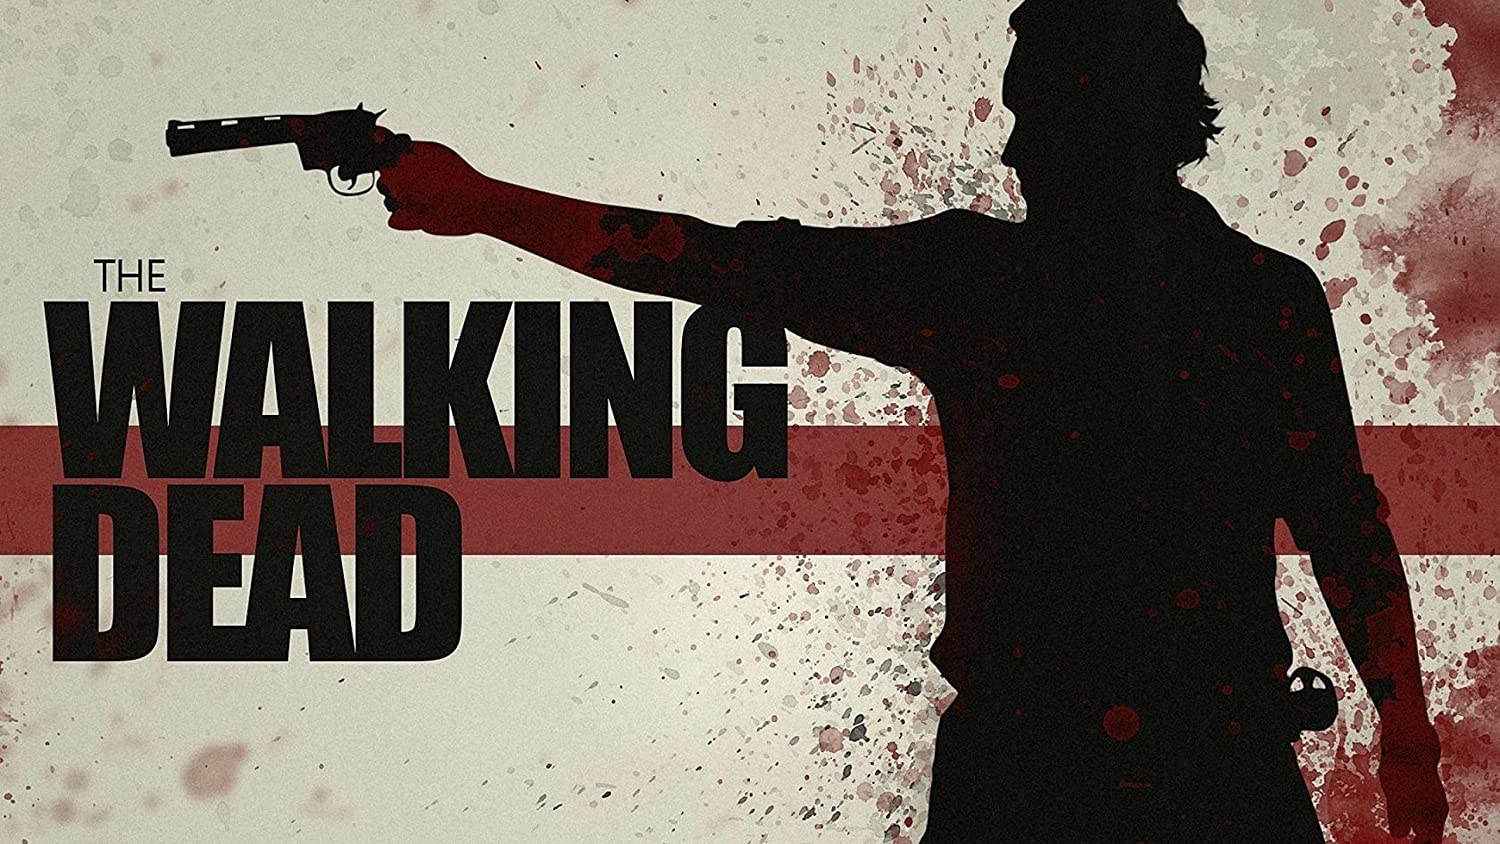 The Walking Dead Movie Poster Canvas Picture Art Print Premium Quality A0 A1 A2 A3 A4 (A0 Canvas (30 40))